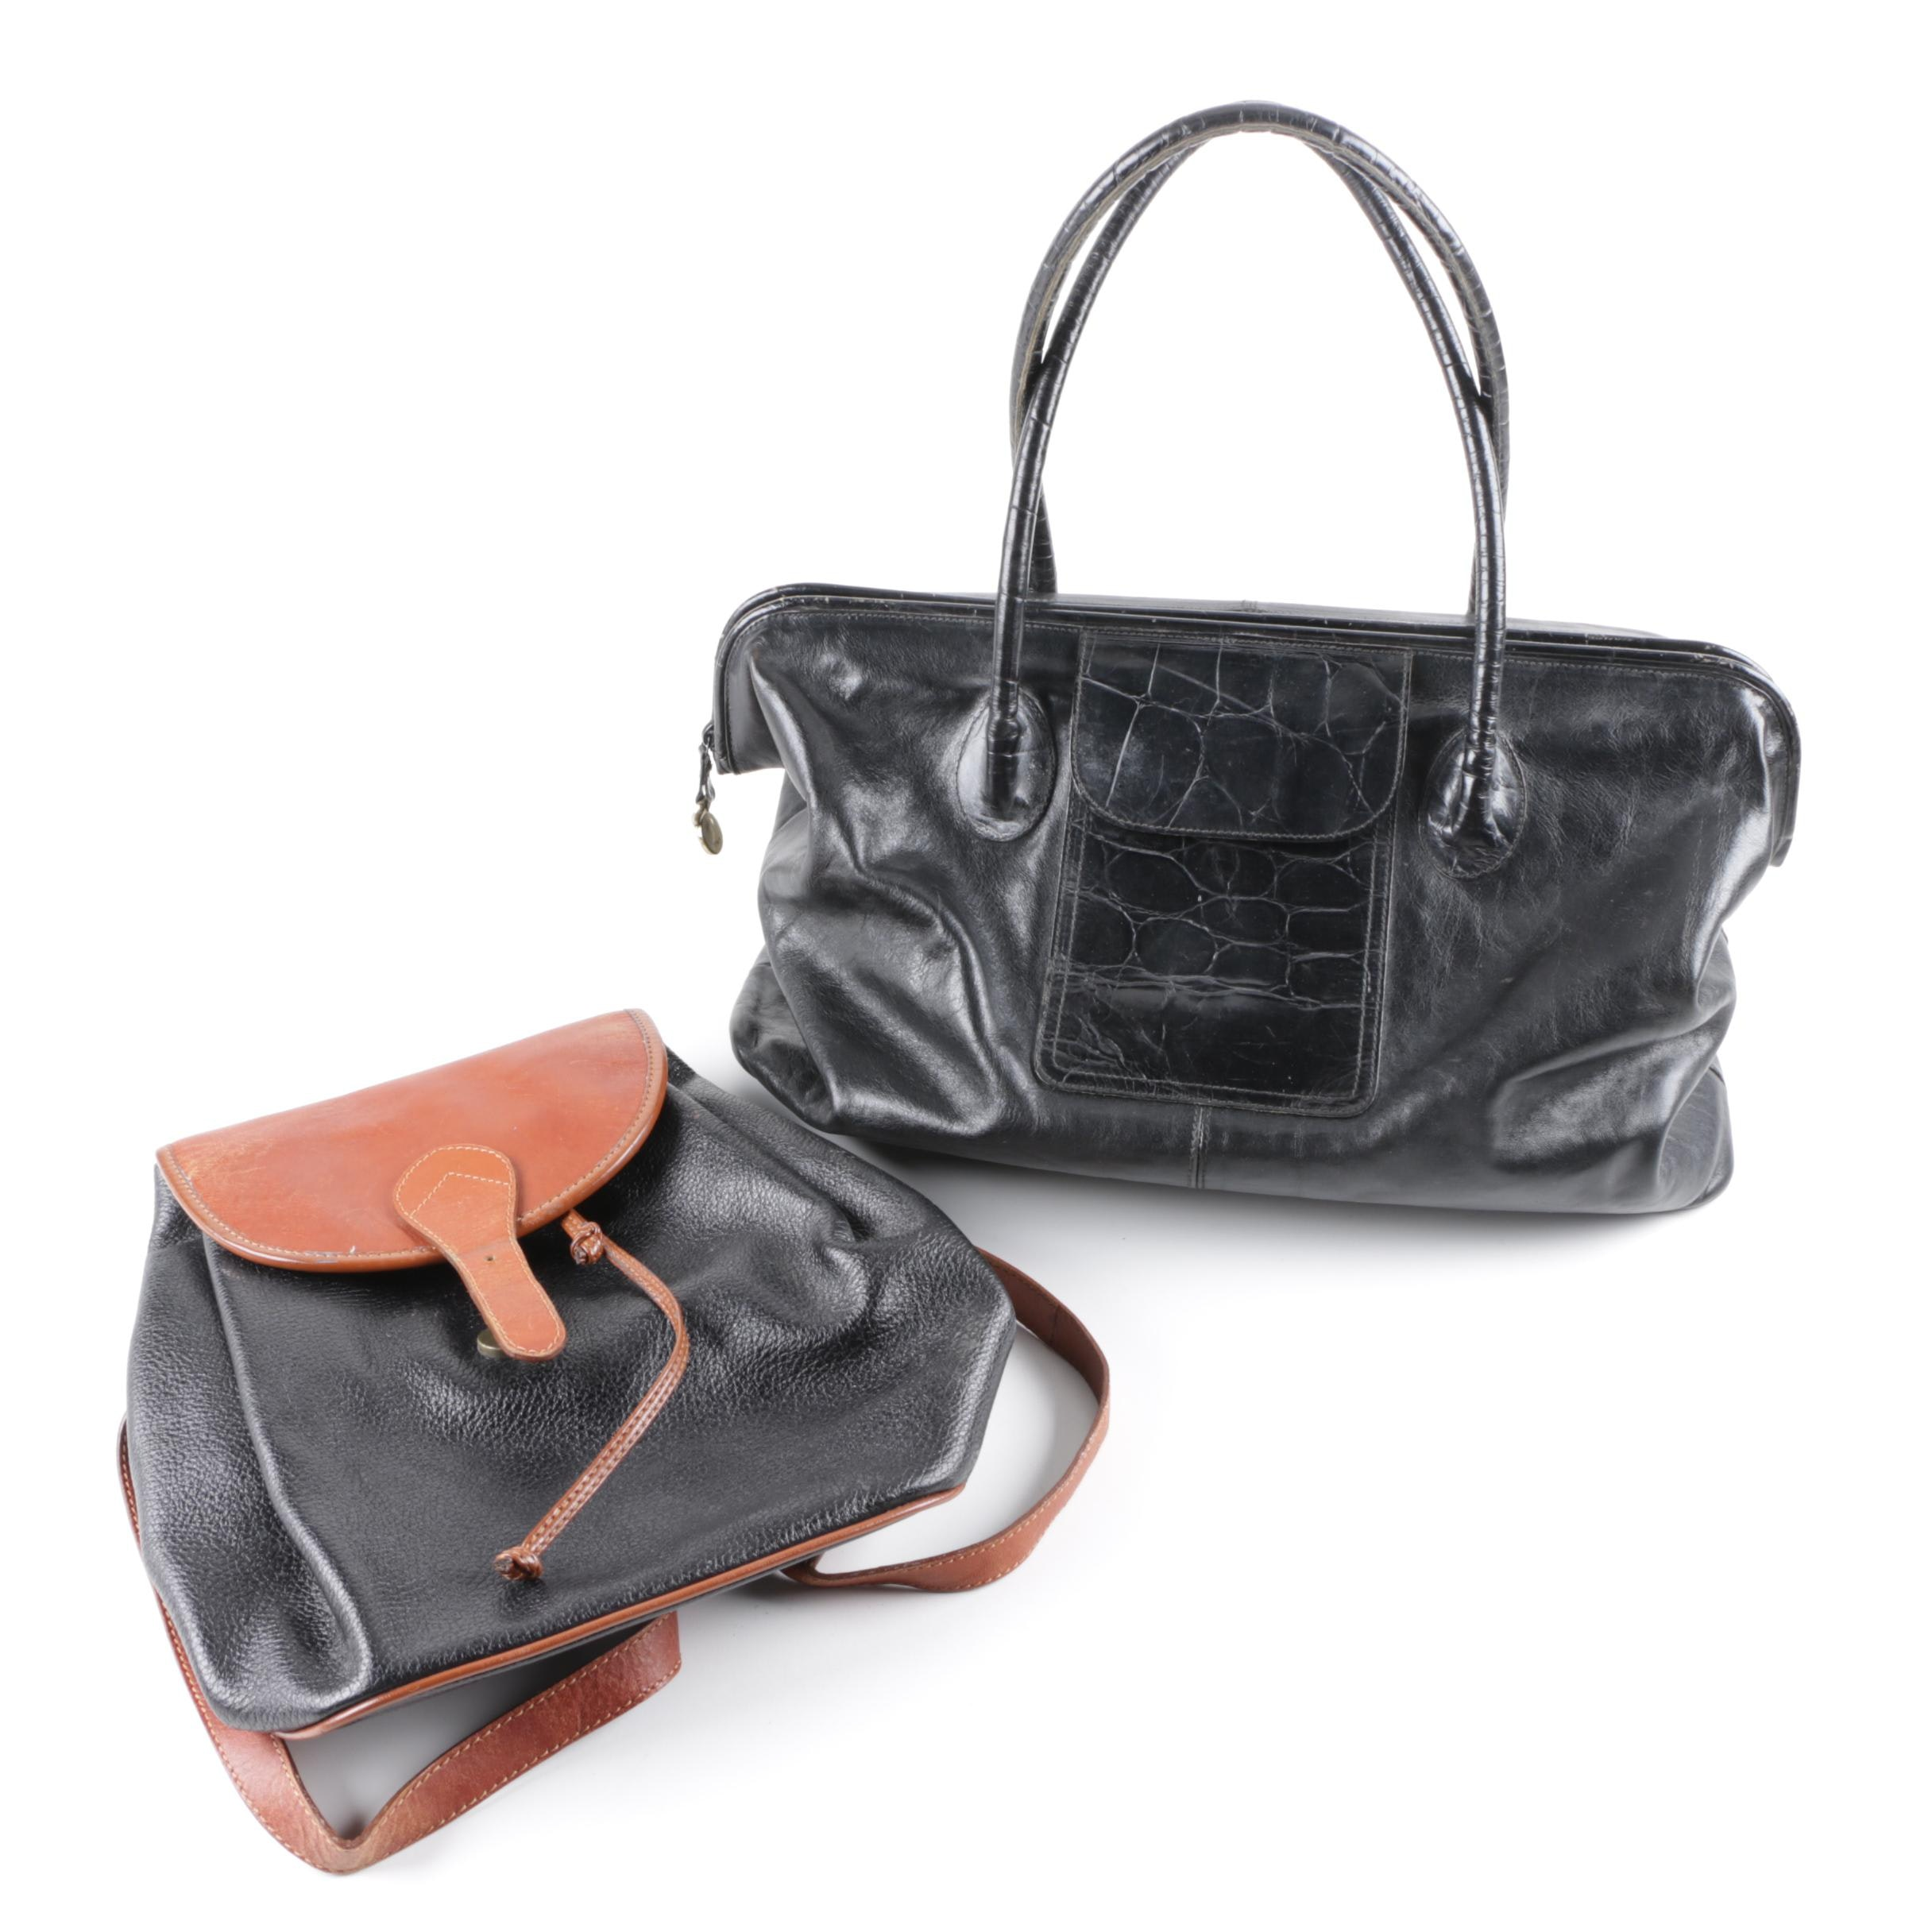 Furla Black Leather Handbag and Nine West Leather Backpack